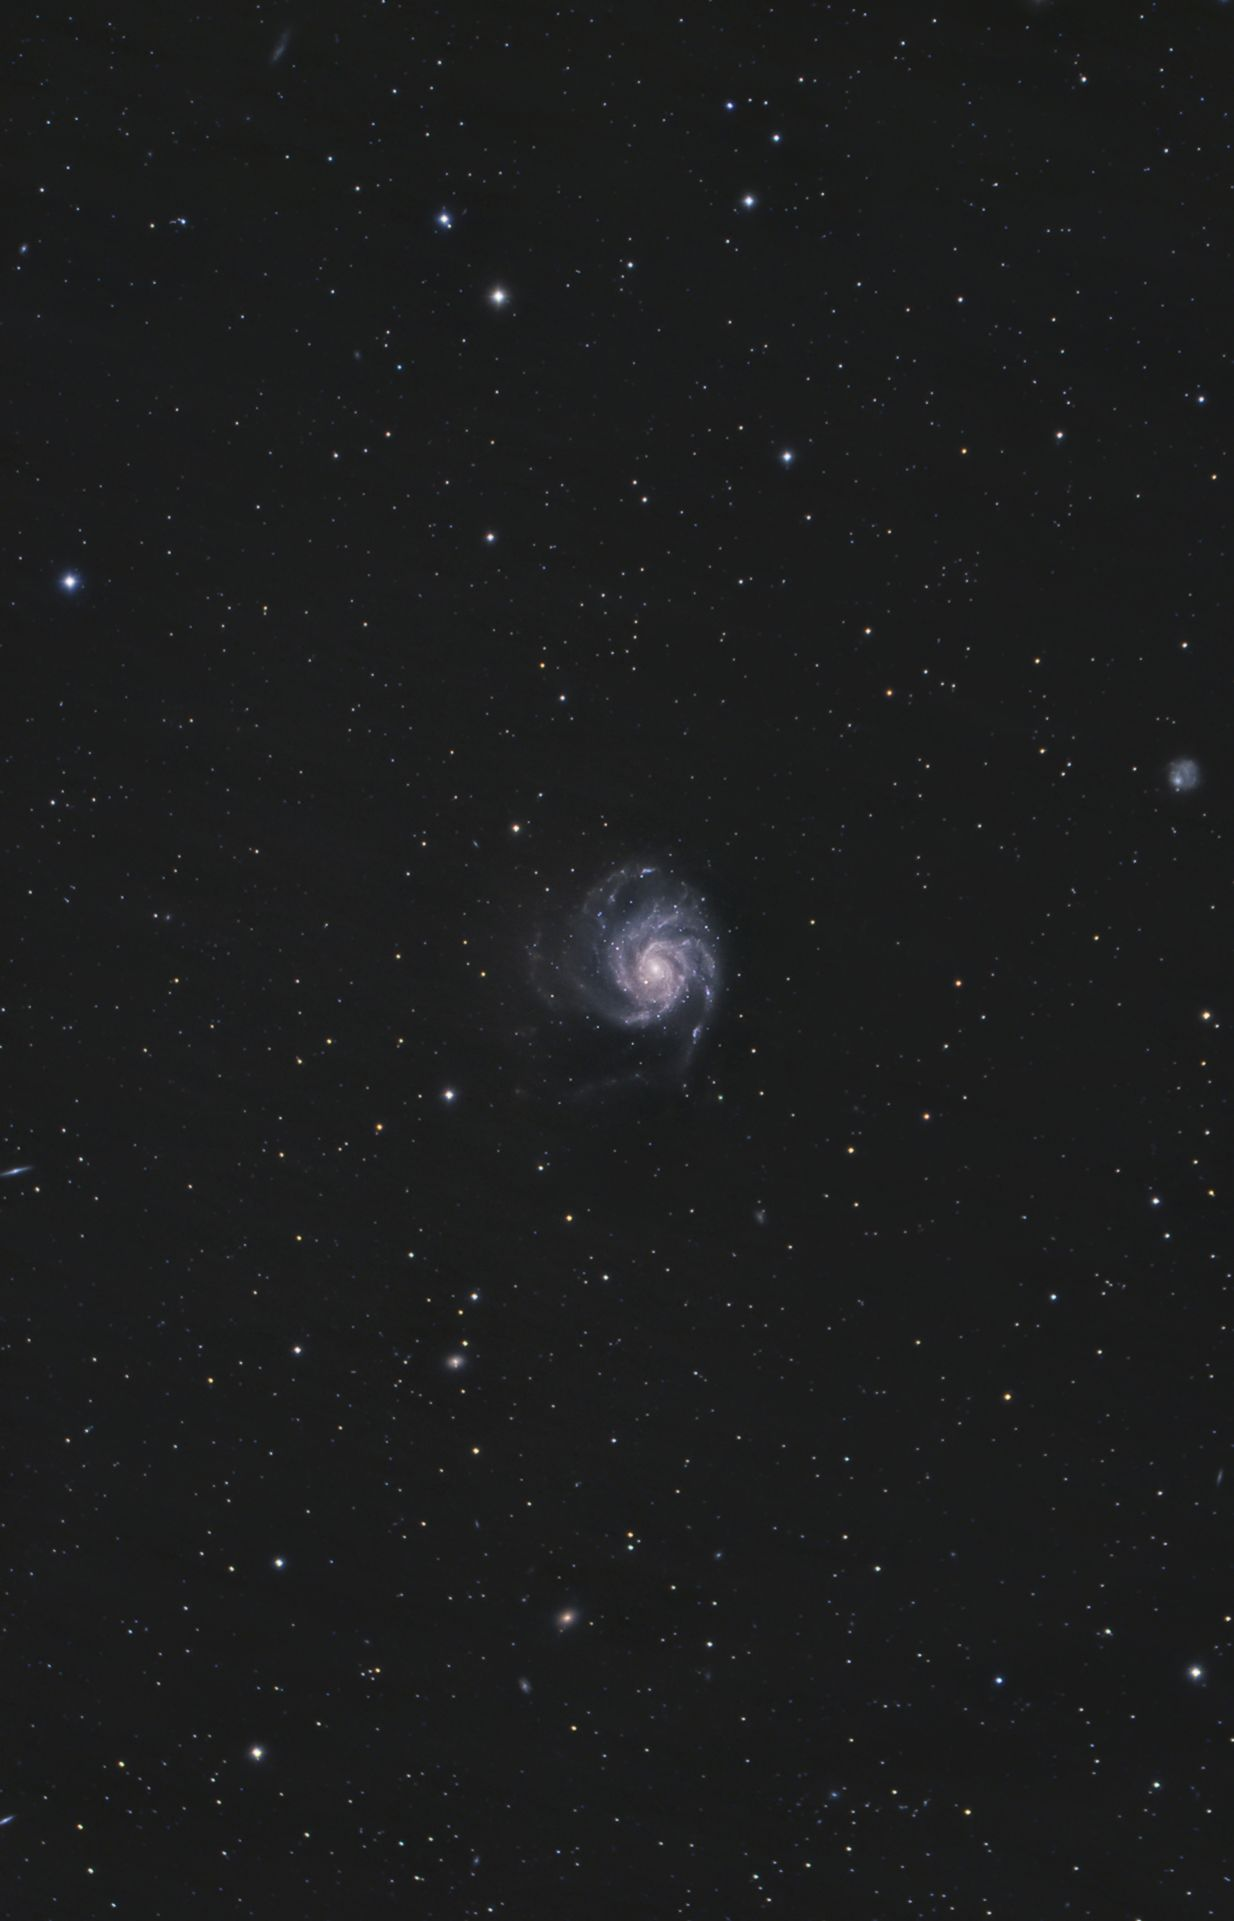 The spiral galaxy known as Messier 101 is located near the handle of the Big Dipper!